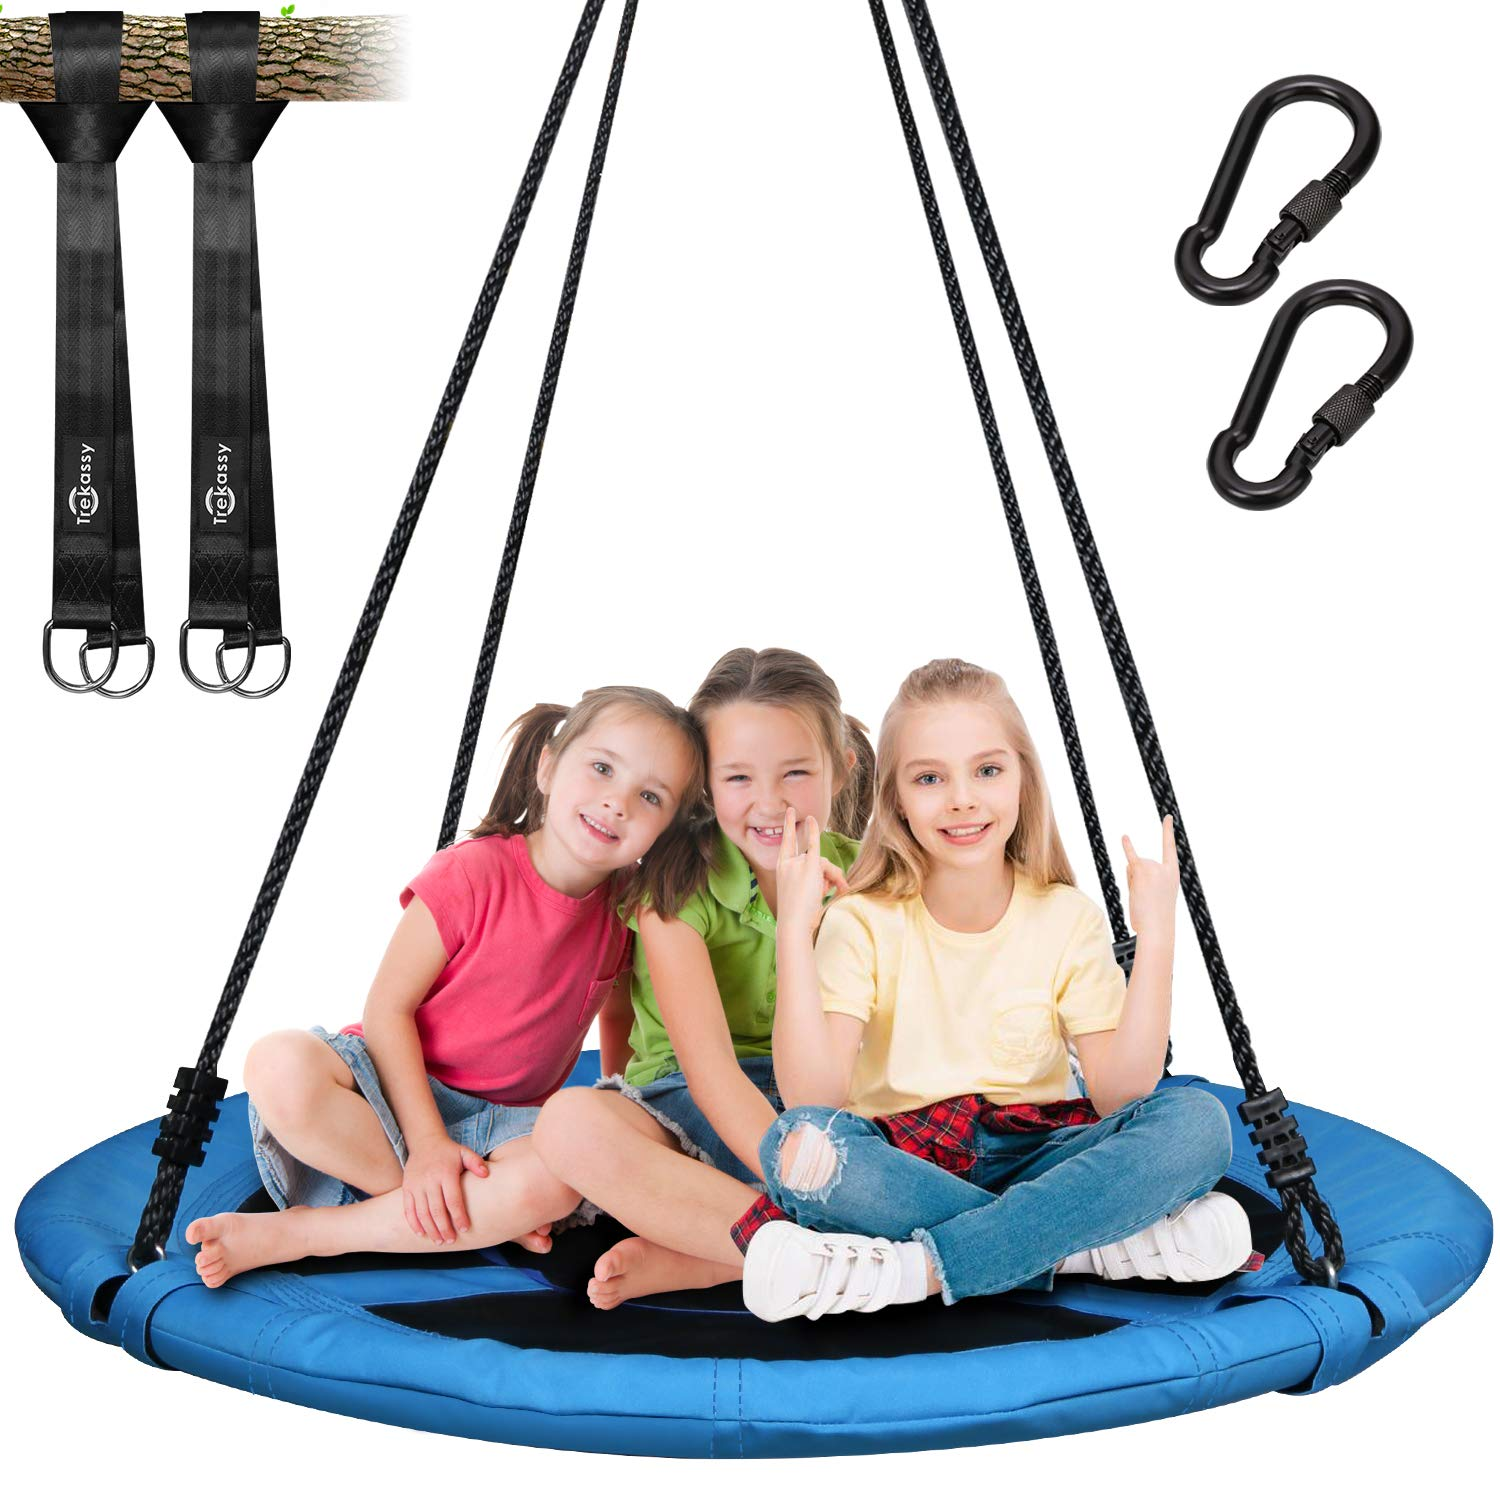 Trekassy 700lb Saucer Tree Swing for Kids Adults 40 Inch 900D Oxford Waterproof Frame Includes 2 Tree Hanging Straps by Trekassy (Image #1)